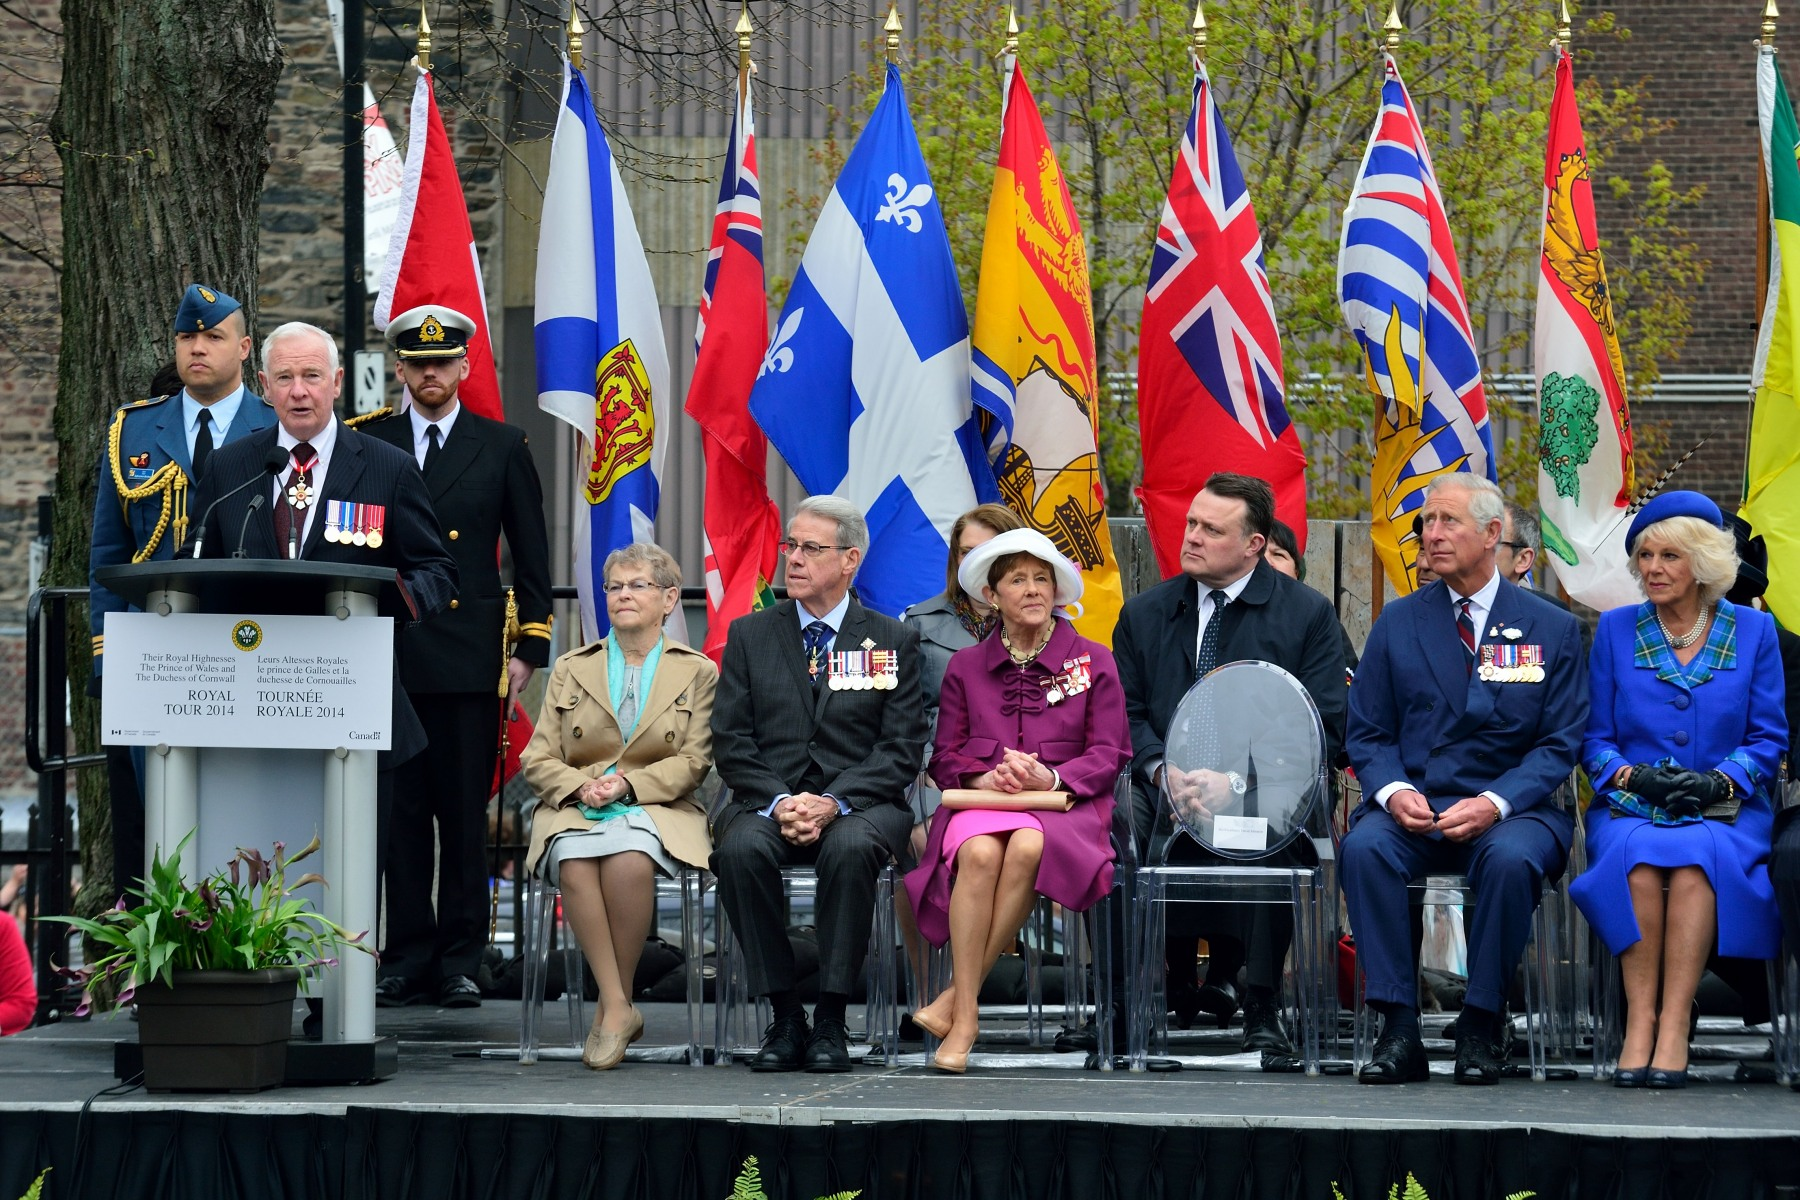 """We are particularly delighted to greet you on Victoria Day, which Canadians have been celebrating since 1845—back when Canada itself was just a province!,"" said His Excellency. ""This holiday is a reminder of the deep and enduring ties that exist between Canadians and the Royal Family. It is a connection that Your Royal Highnesses are committed to strengthening."""